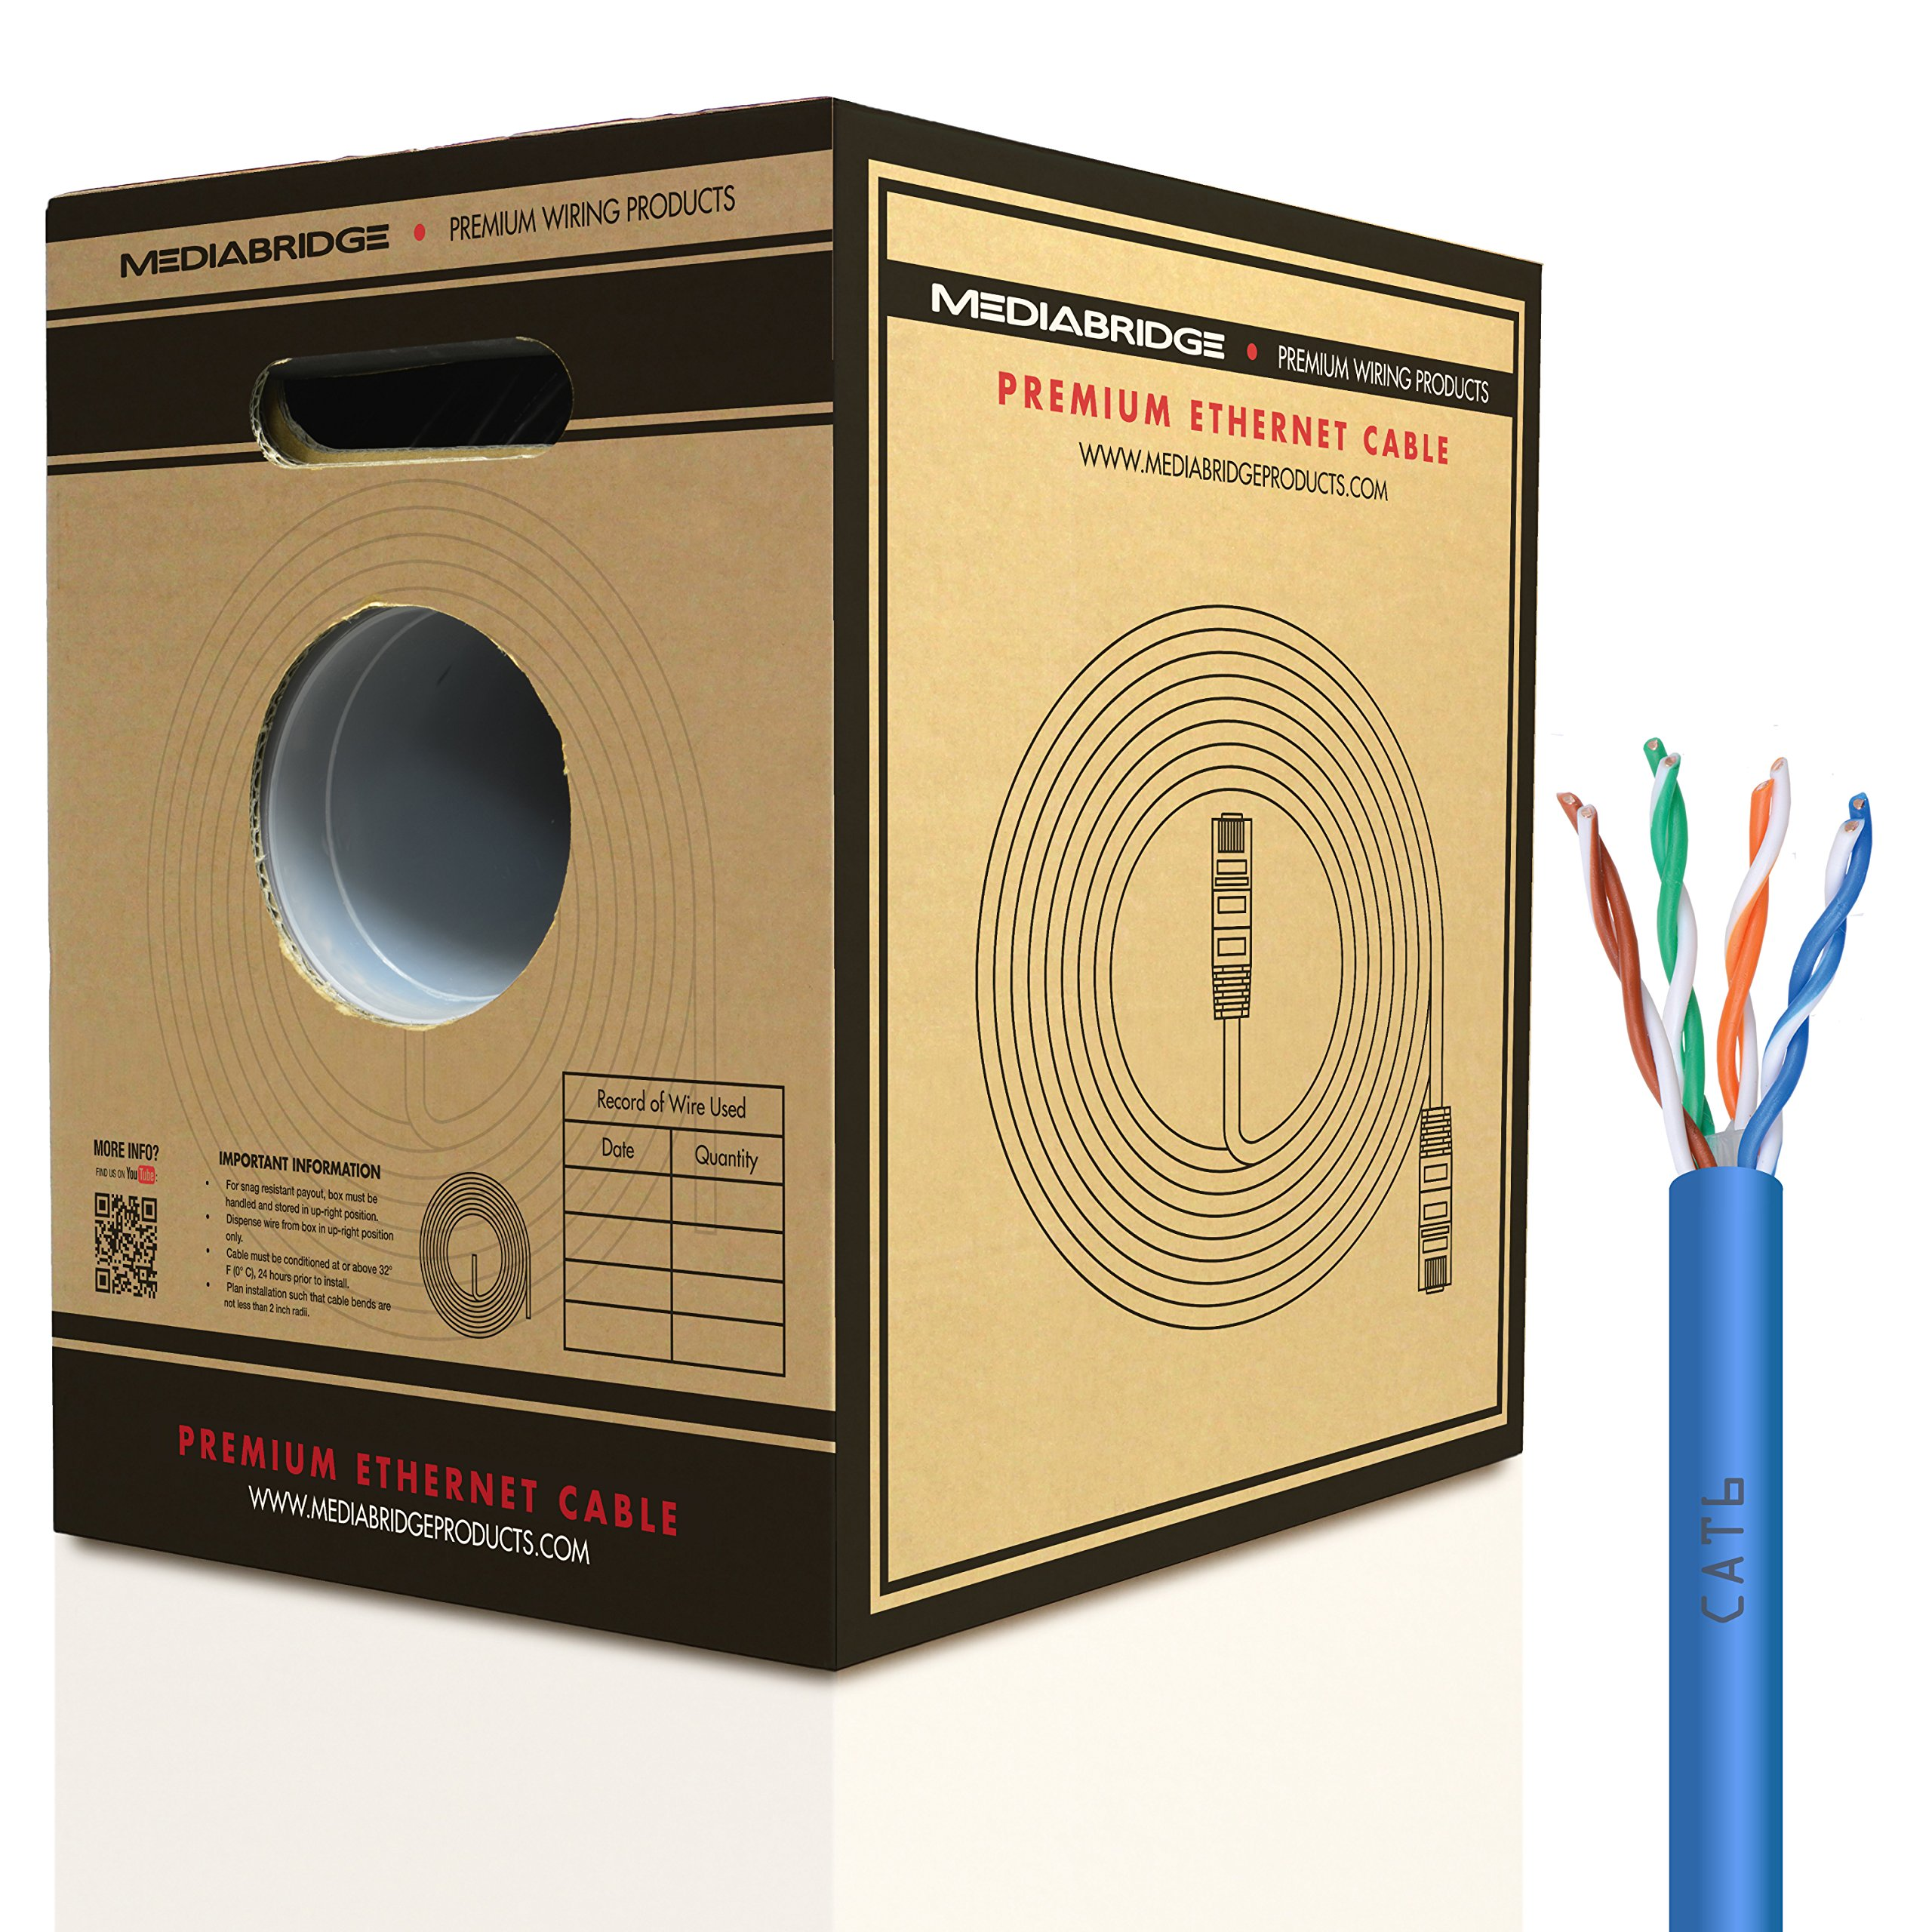 Mediabridge Pure Copper Cat6 Cable (500 Feet, Blue) - 10Gbps Ethernet, Solid, in-Wall Rated, w/Premium Snagless Pull-Out Box - (Part# C6-500-BLUE) by Mediabridge